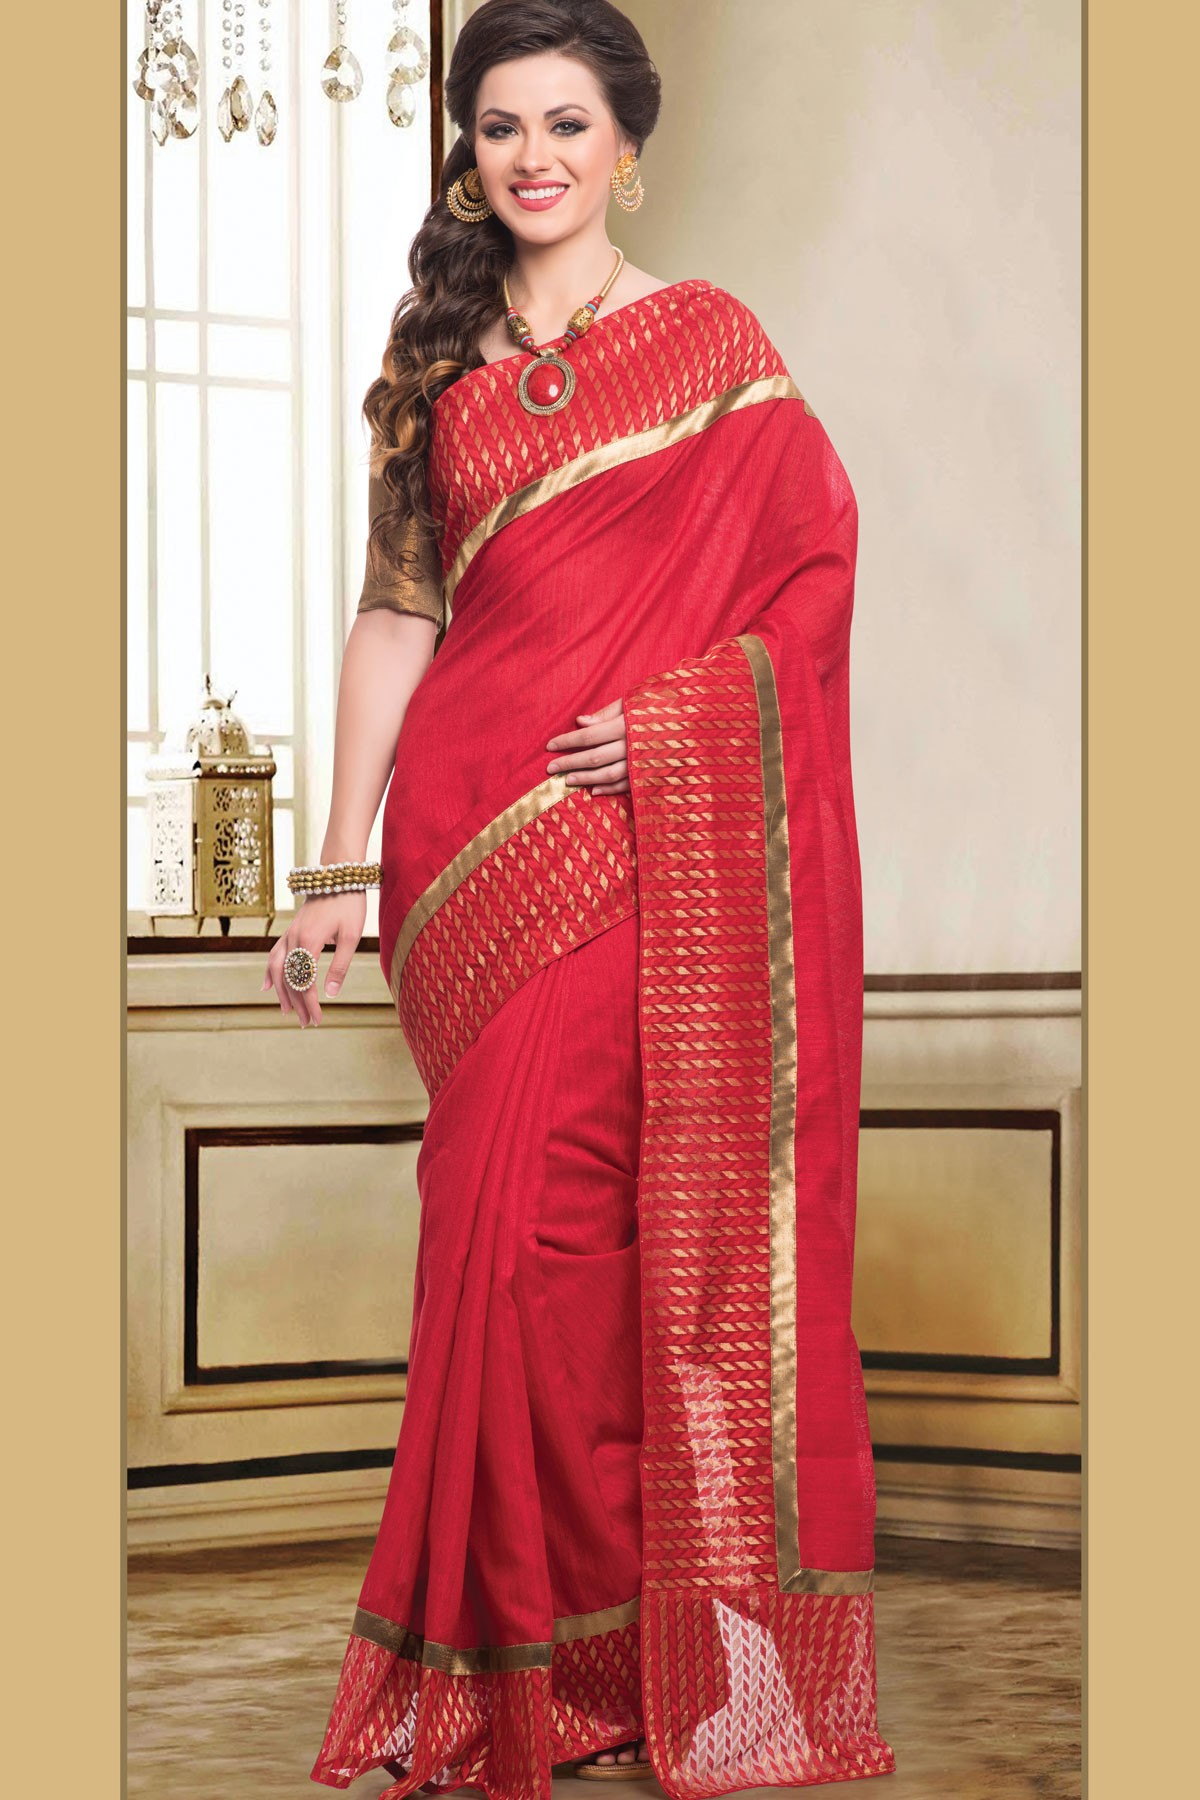 shopandproduct.com:Bright red ethereal blended saree with ...